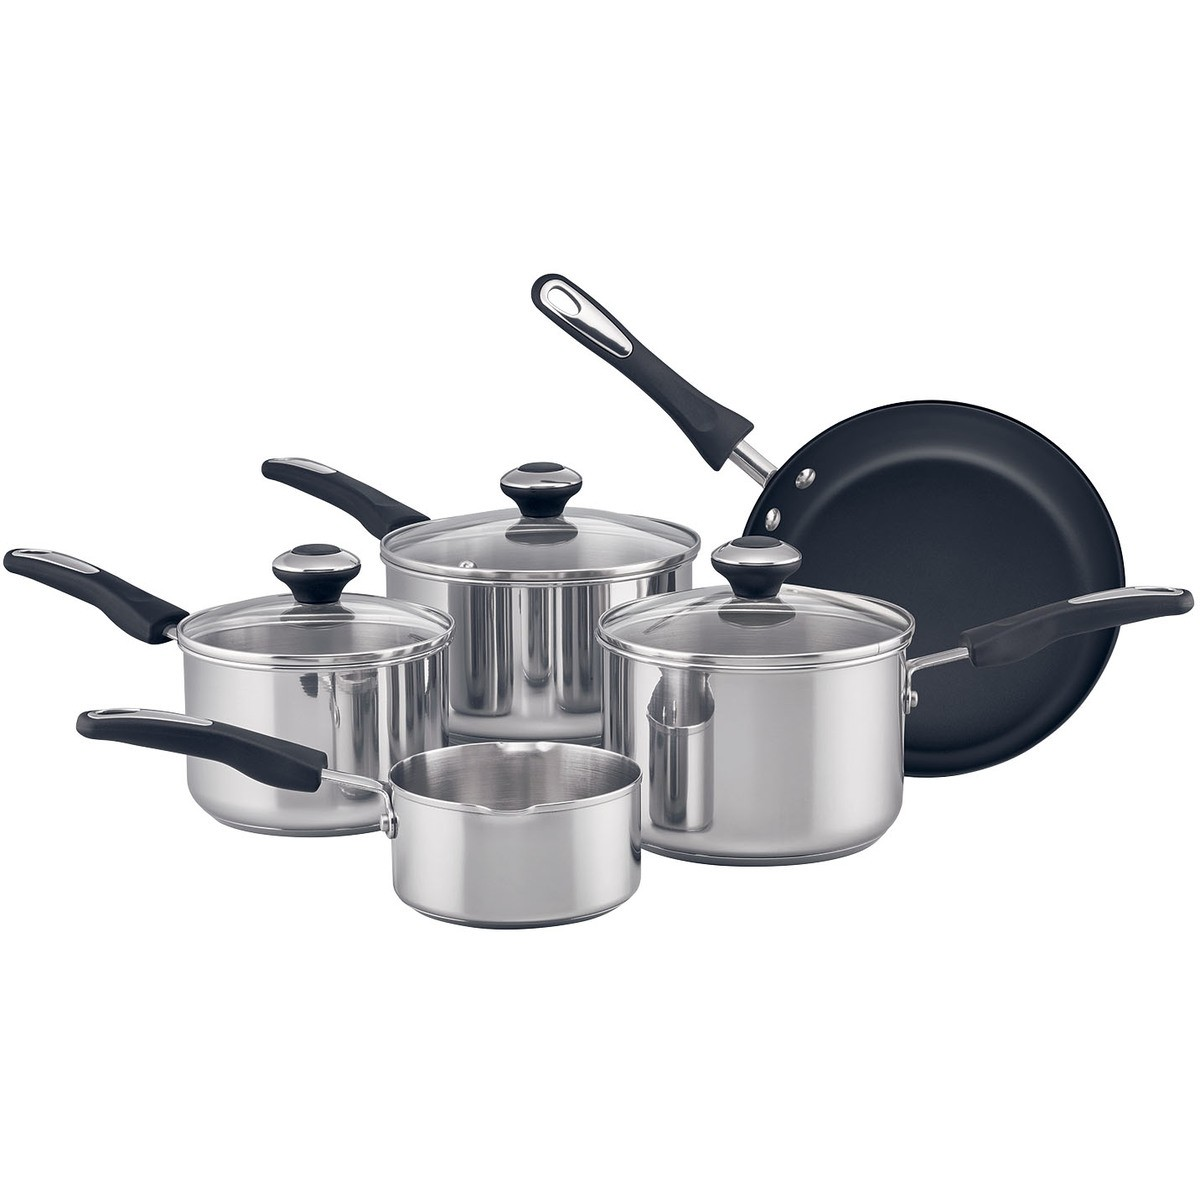 Big W Stock Pot Raco Stainless Steel 5 Piece Cookware Set